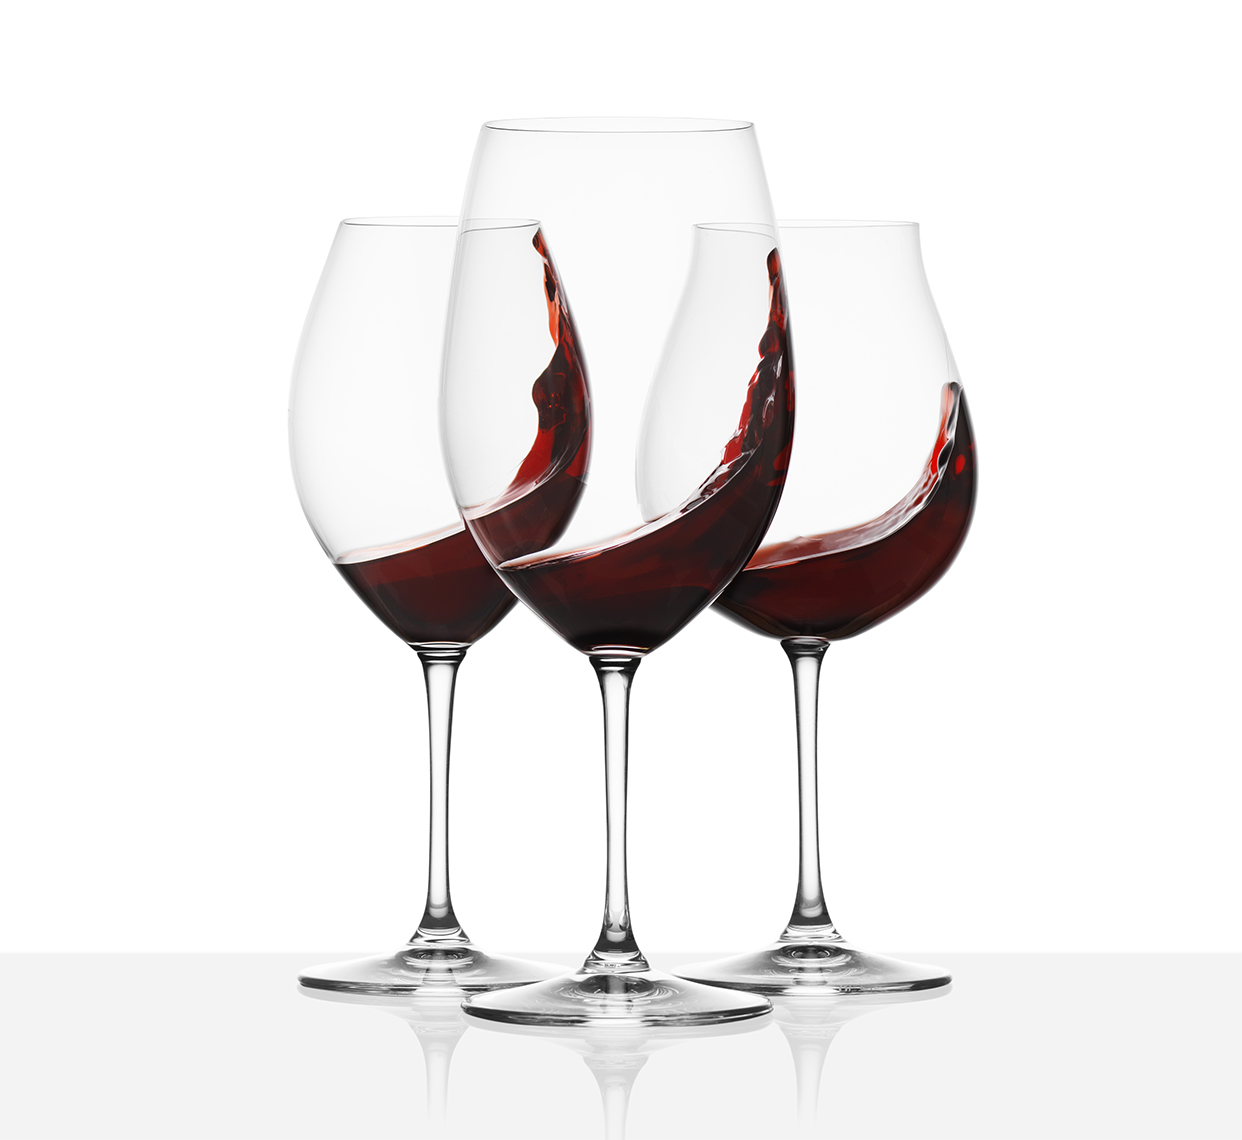 Riedel wine glasses splash